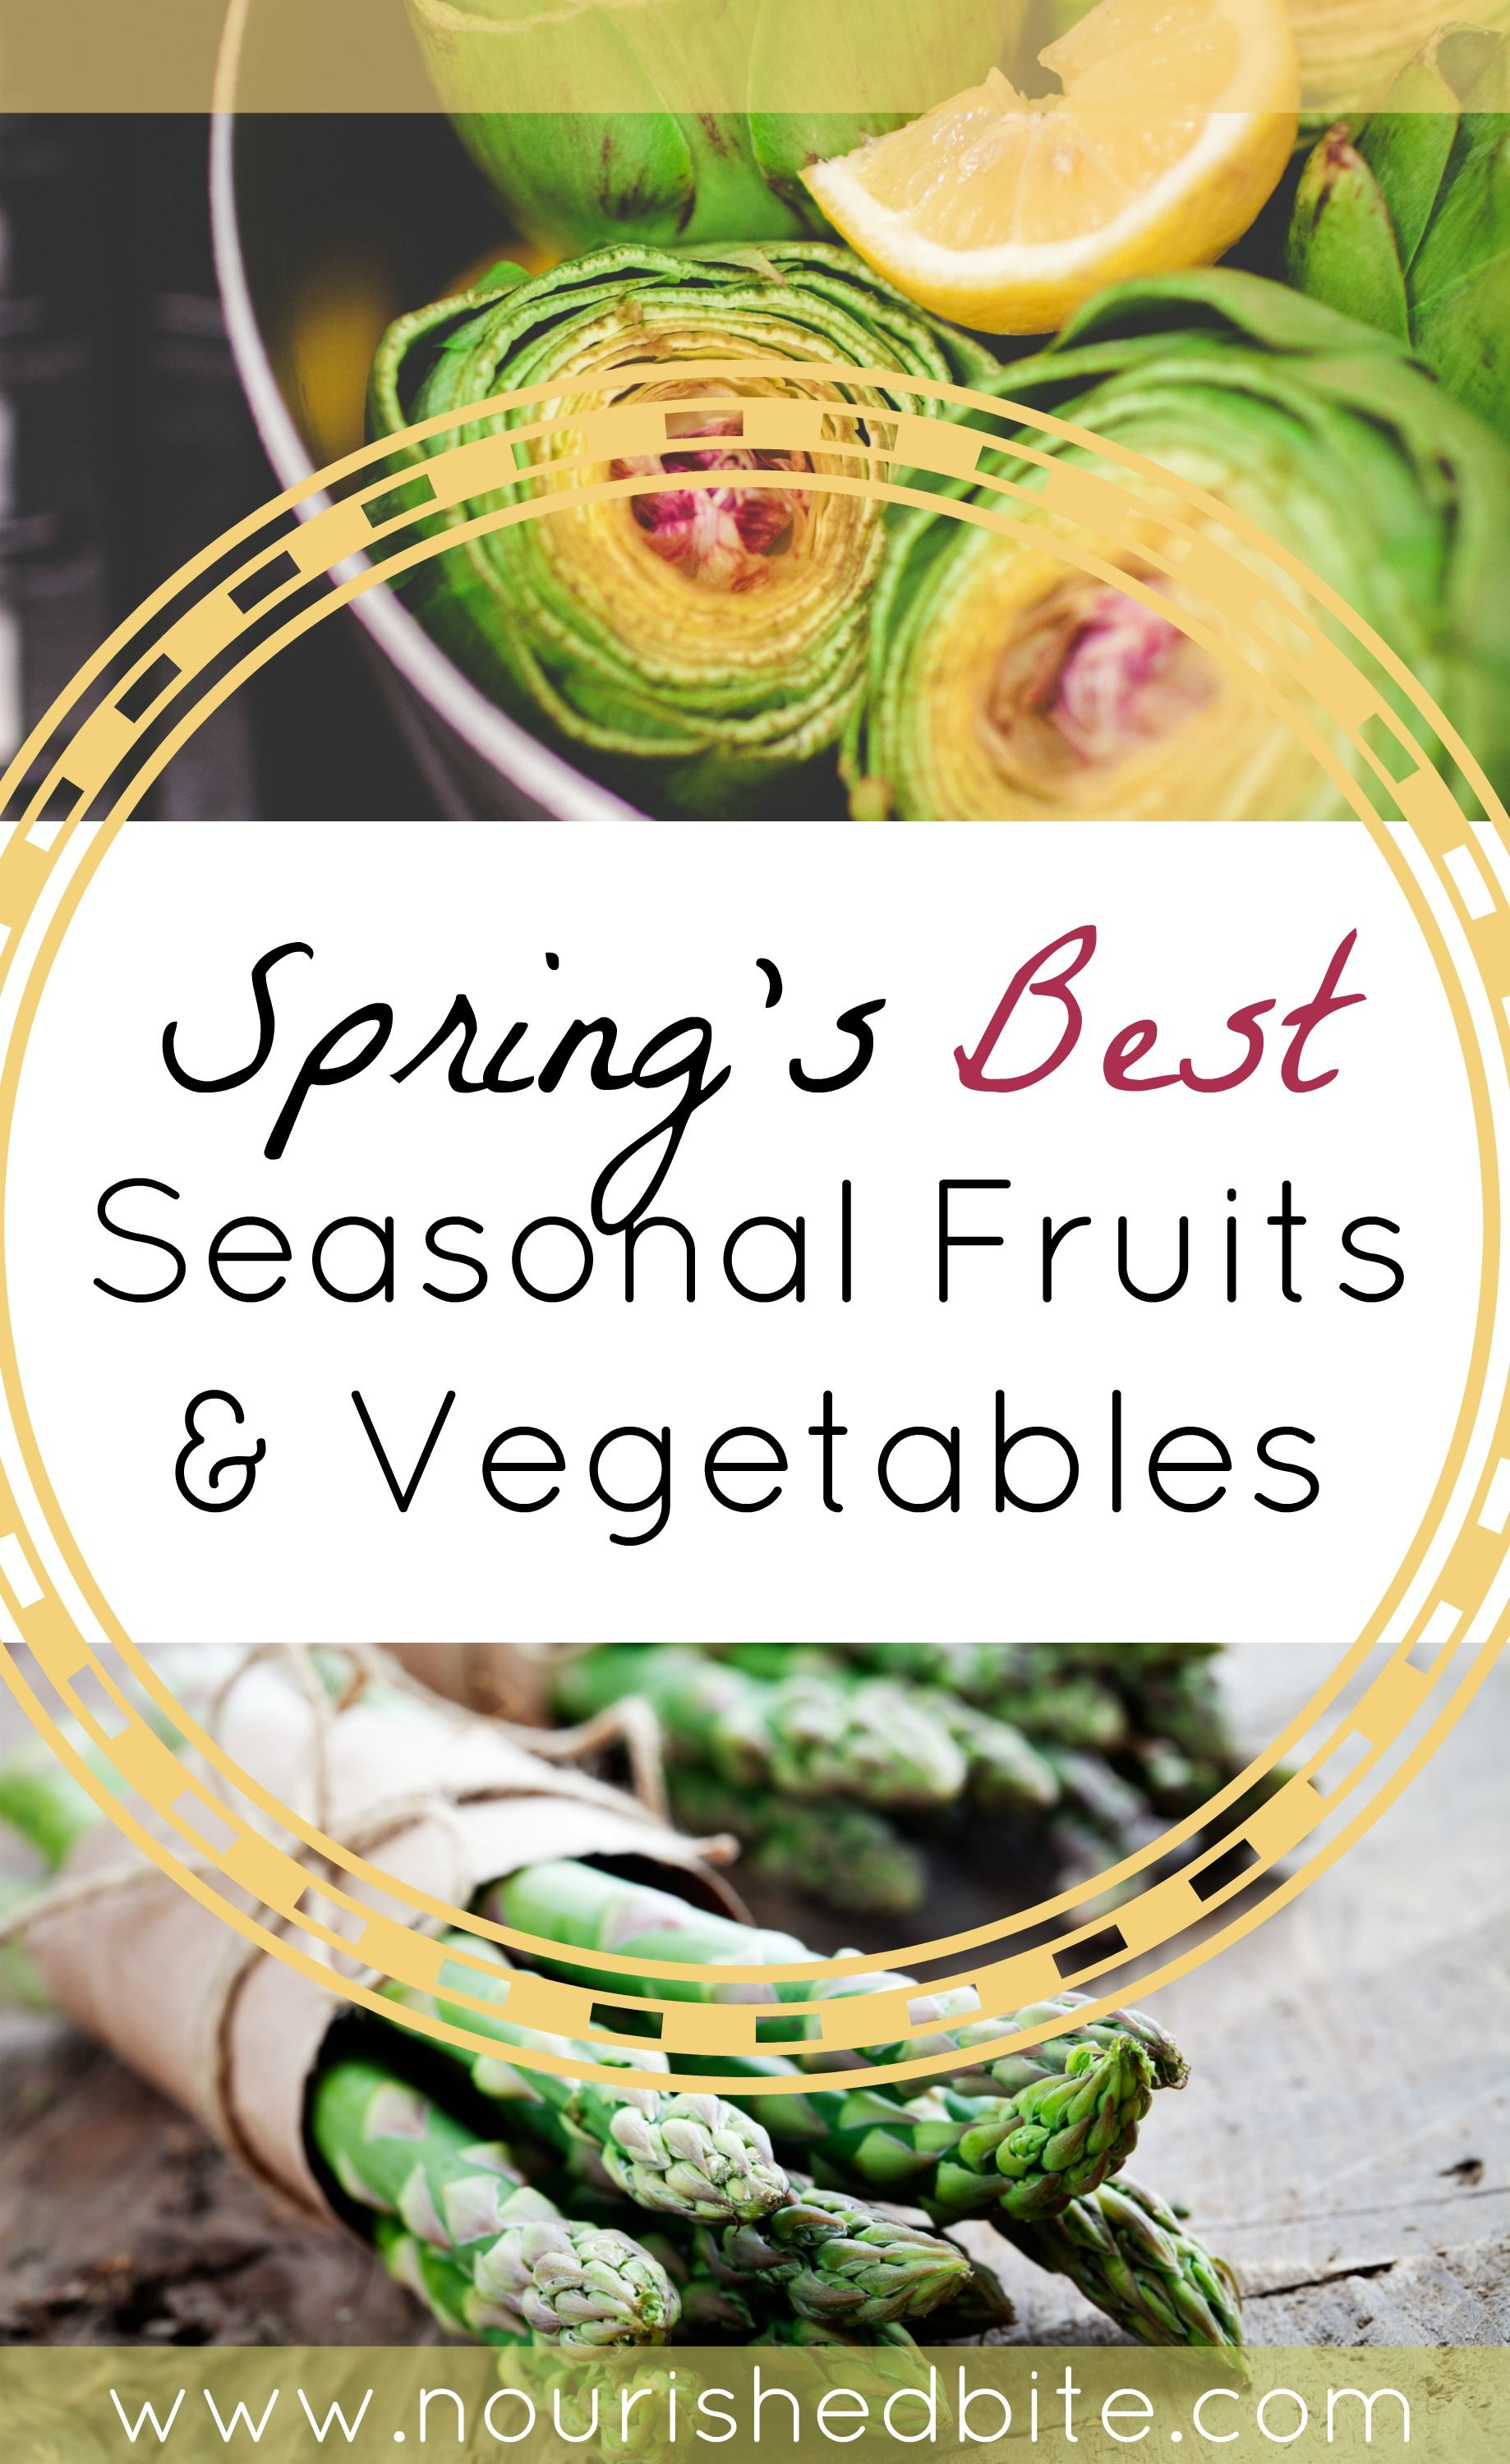 Top Picks for Winter Produce recommendations